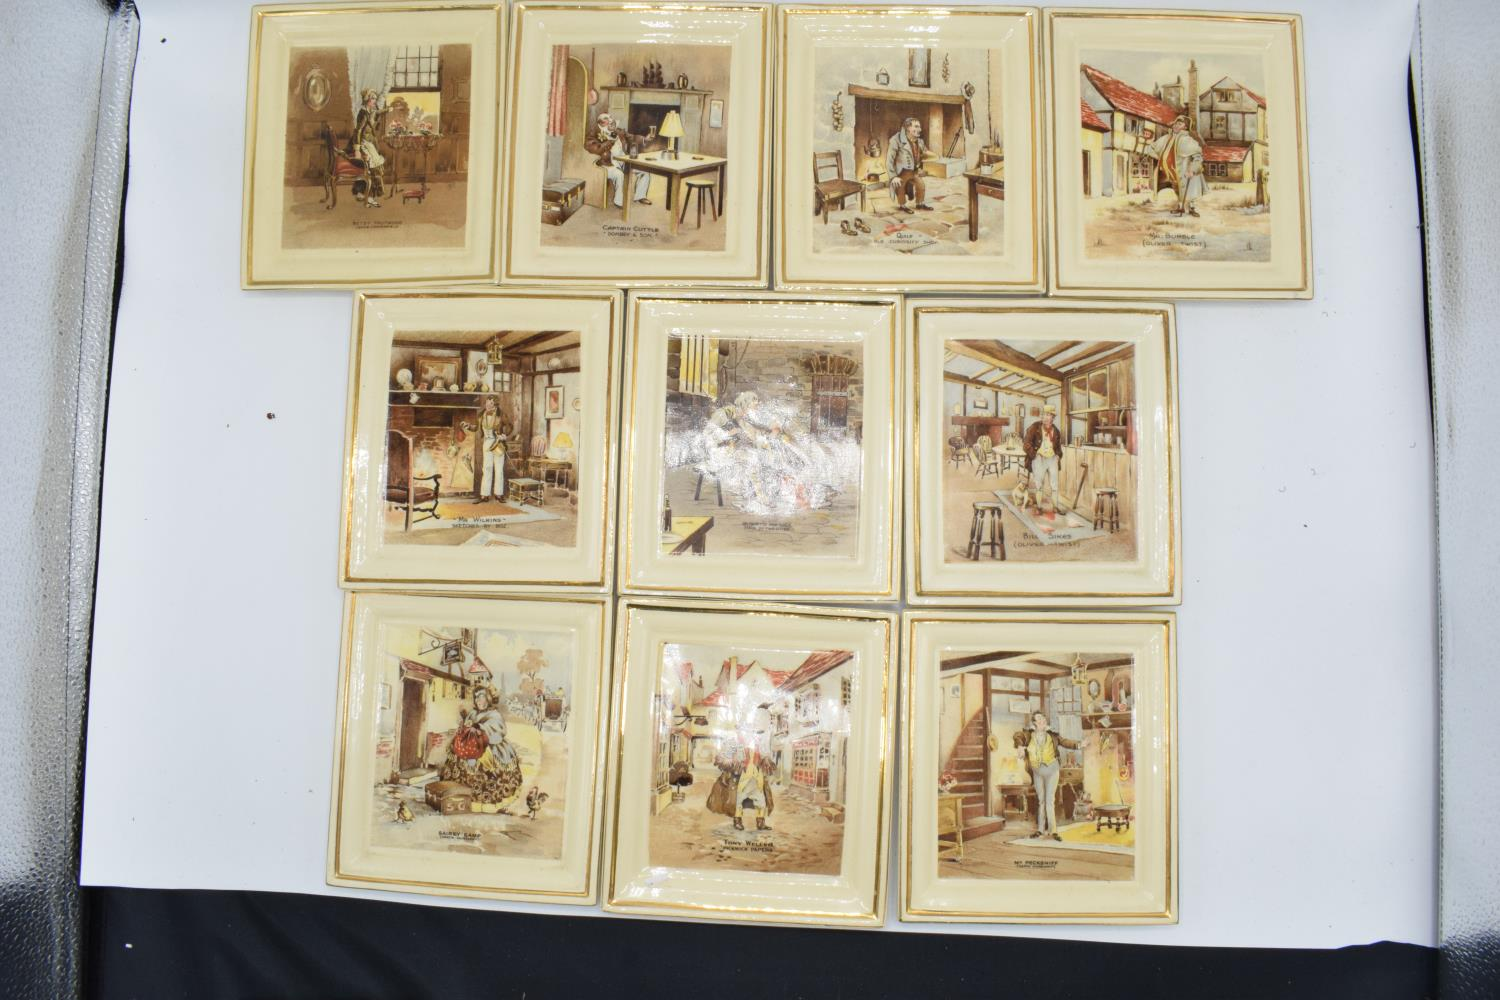 Newhall Pottery of Hanley Dickens wall plaques. In good condition, age related crazing throughout, 1